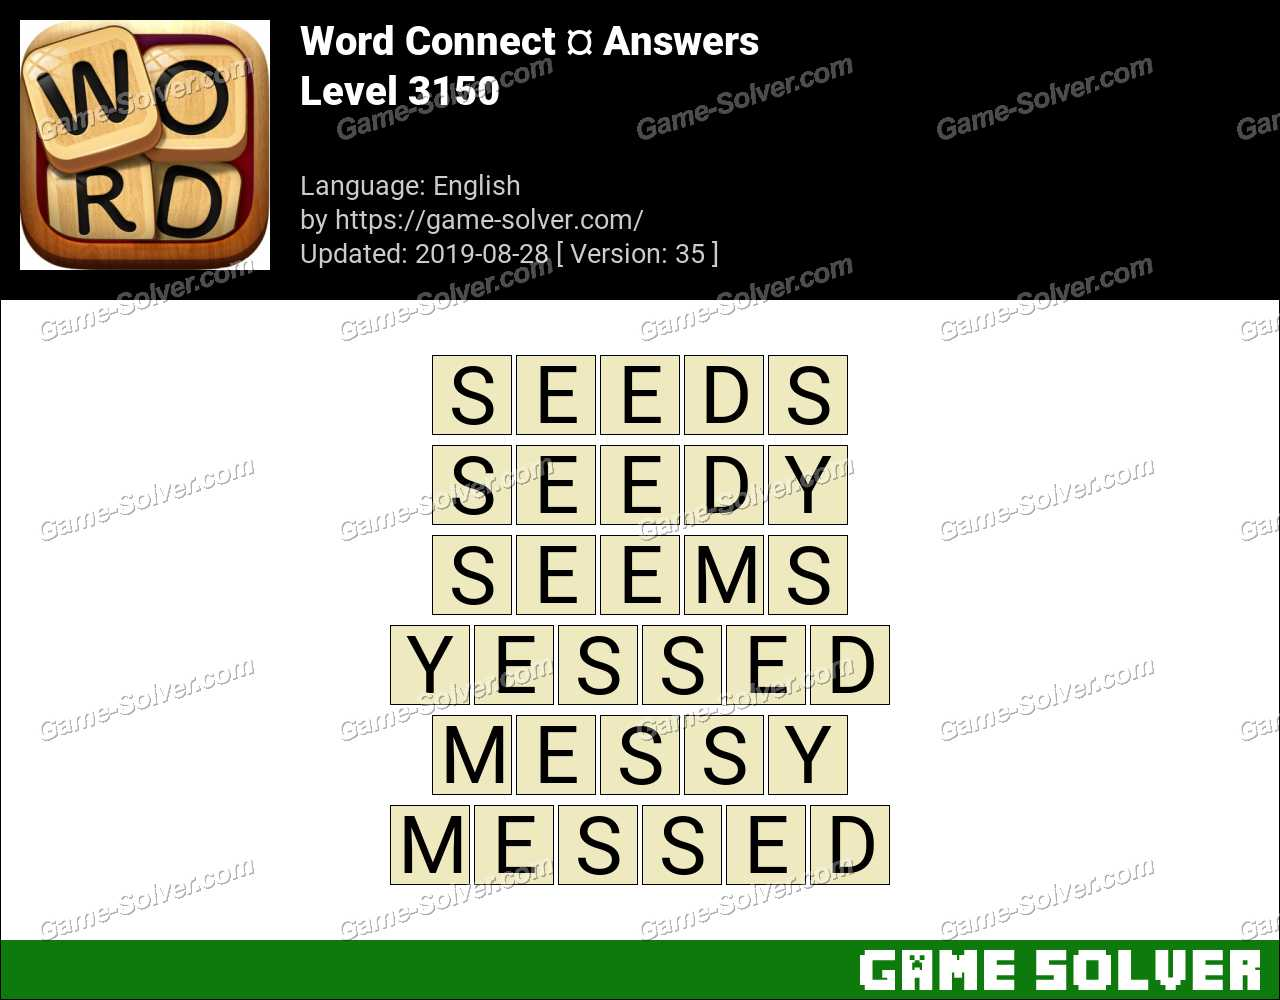 Word Connect Level 3150 Answers